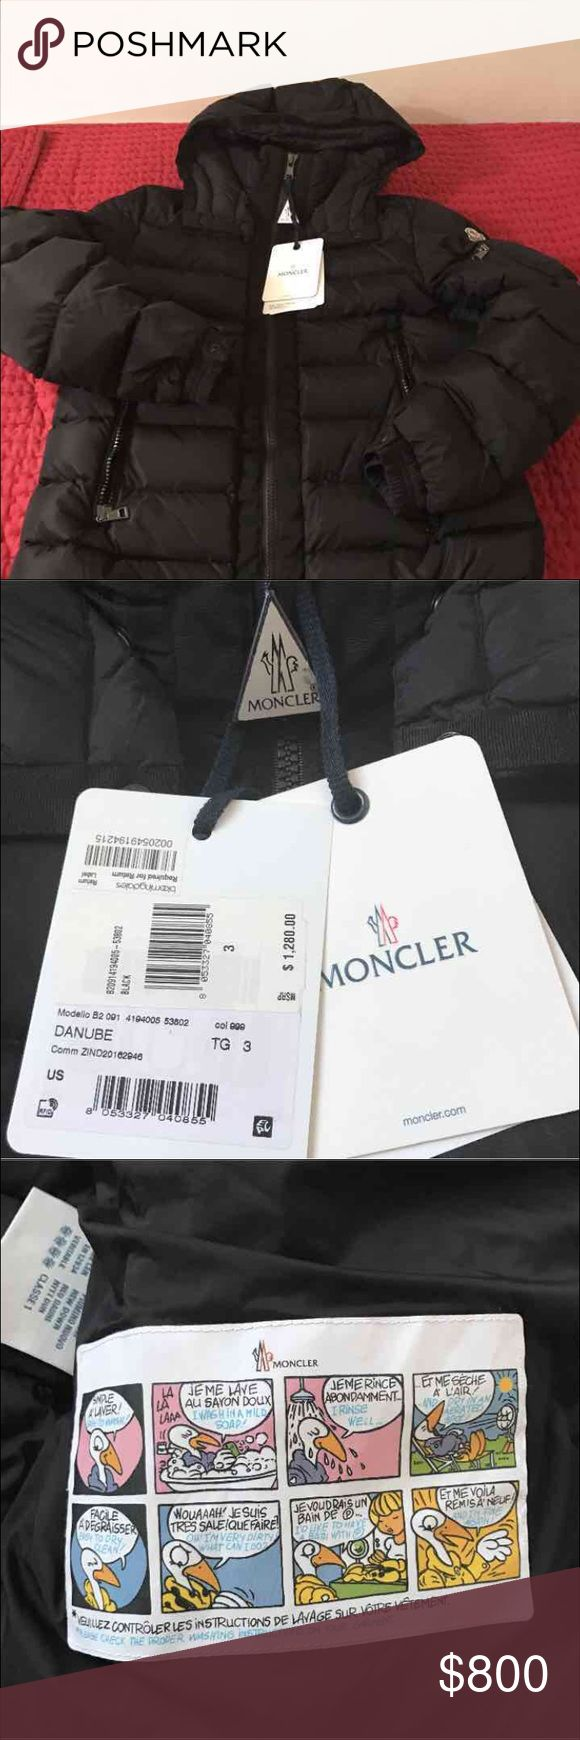 Selling this Authentic Men Moncler jacket on Poshmark! My username is: bettytropics. #shopmycloset #poshmark #fashion #shopping #style #forsale #Moncler #Other